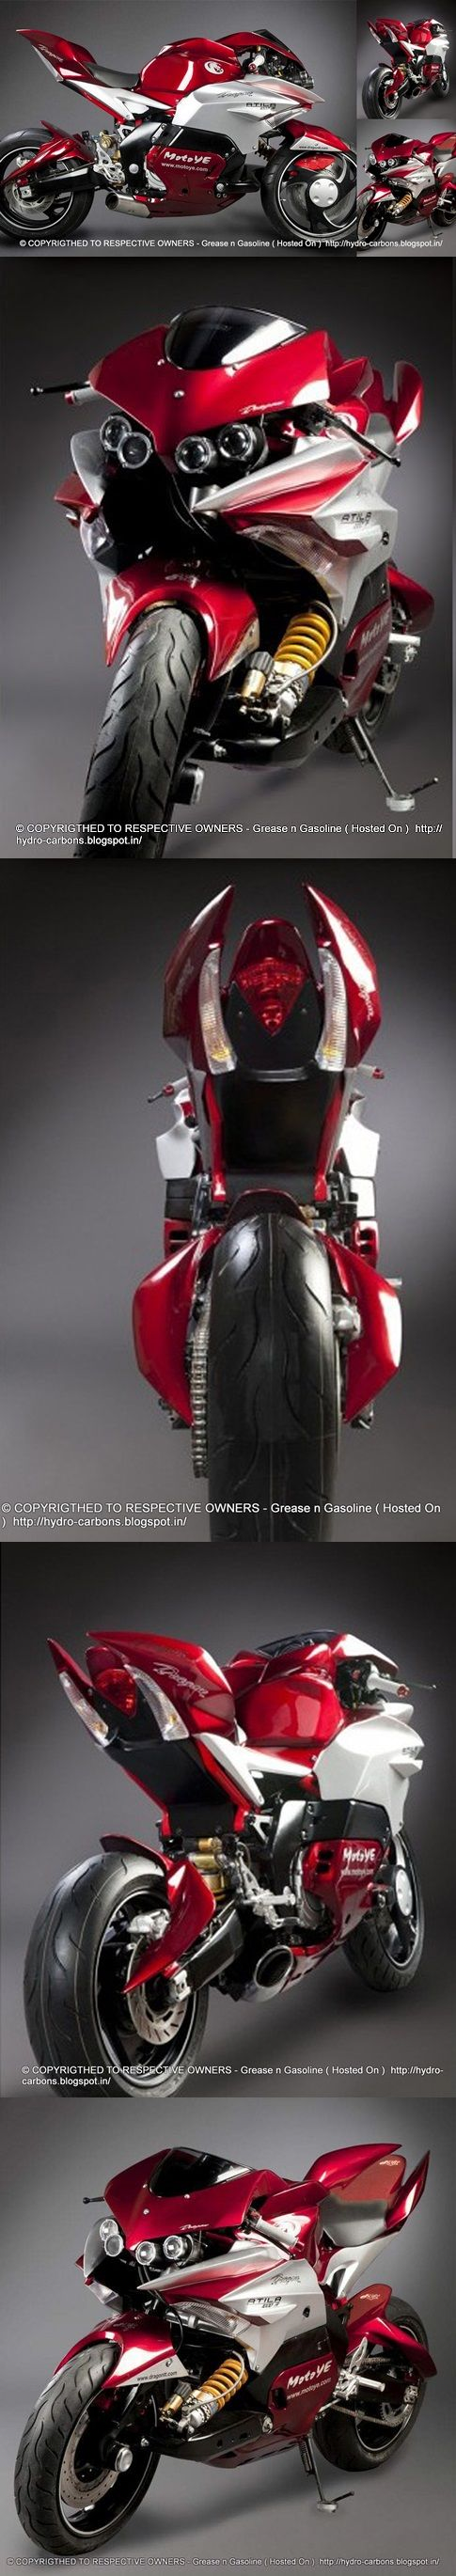 Dragon TT Atila 1000 R   #Follow me on Bikes If You Like What You See 4 Way More ! ¡ !